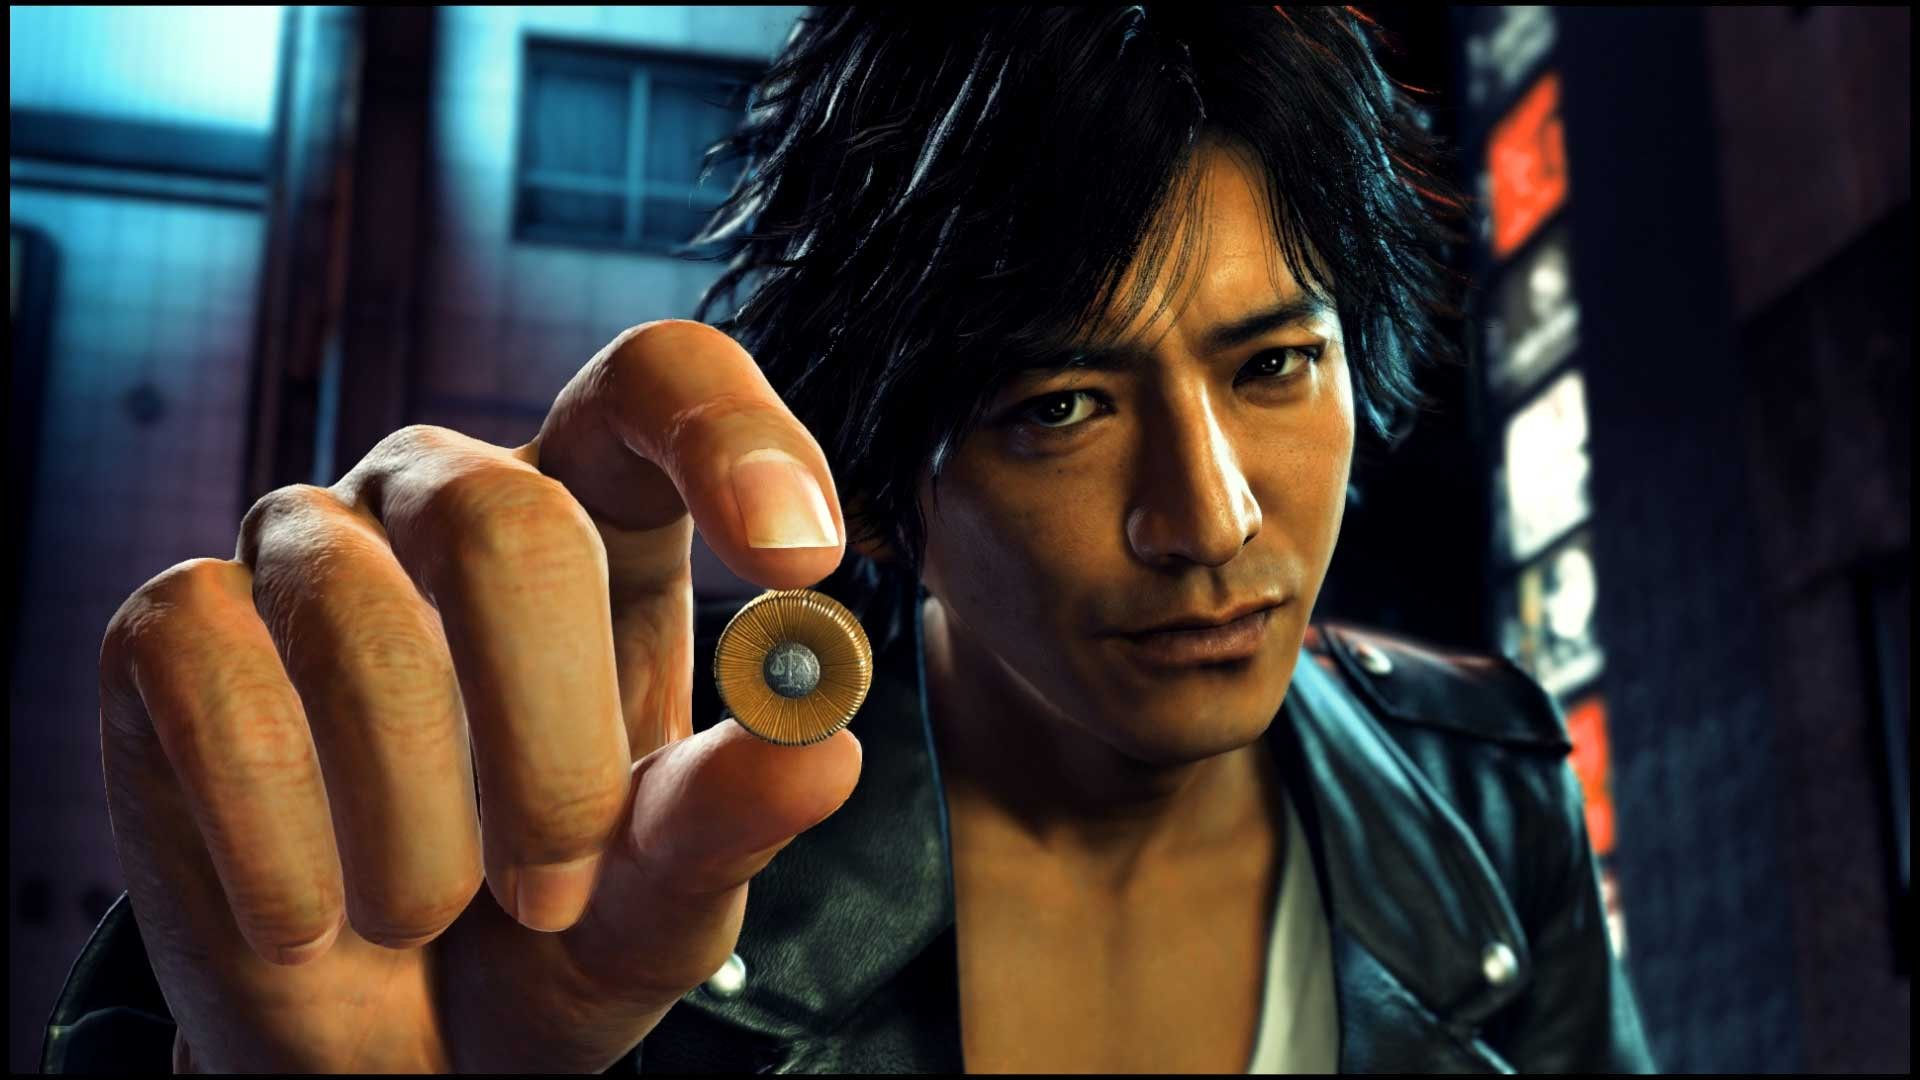 Judgment DualShockers Game of the Year 2019 PS4 Exclusive